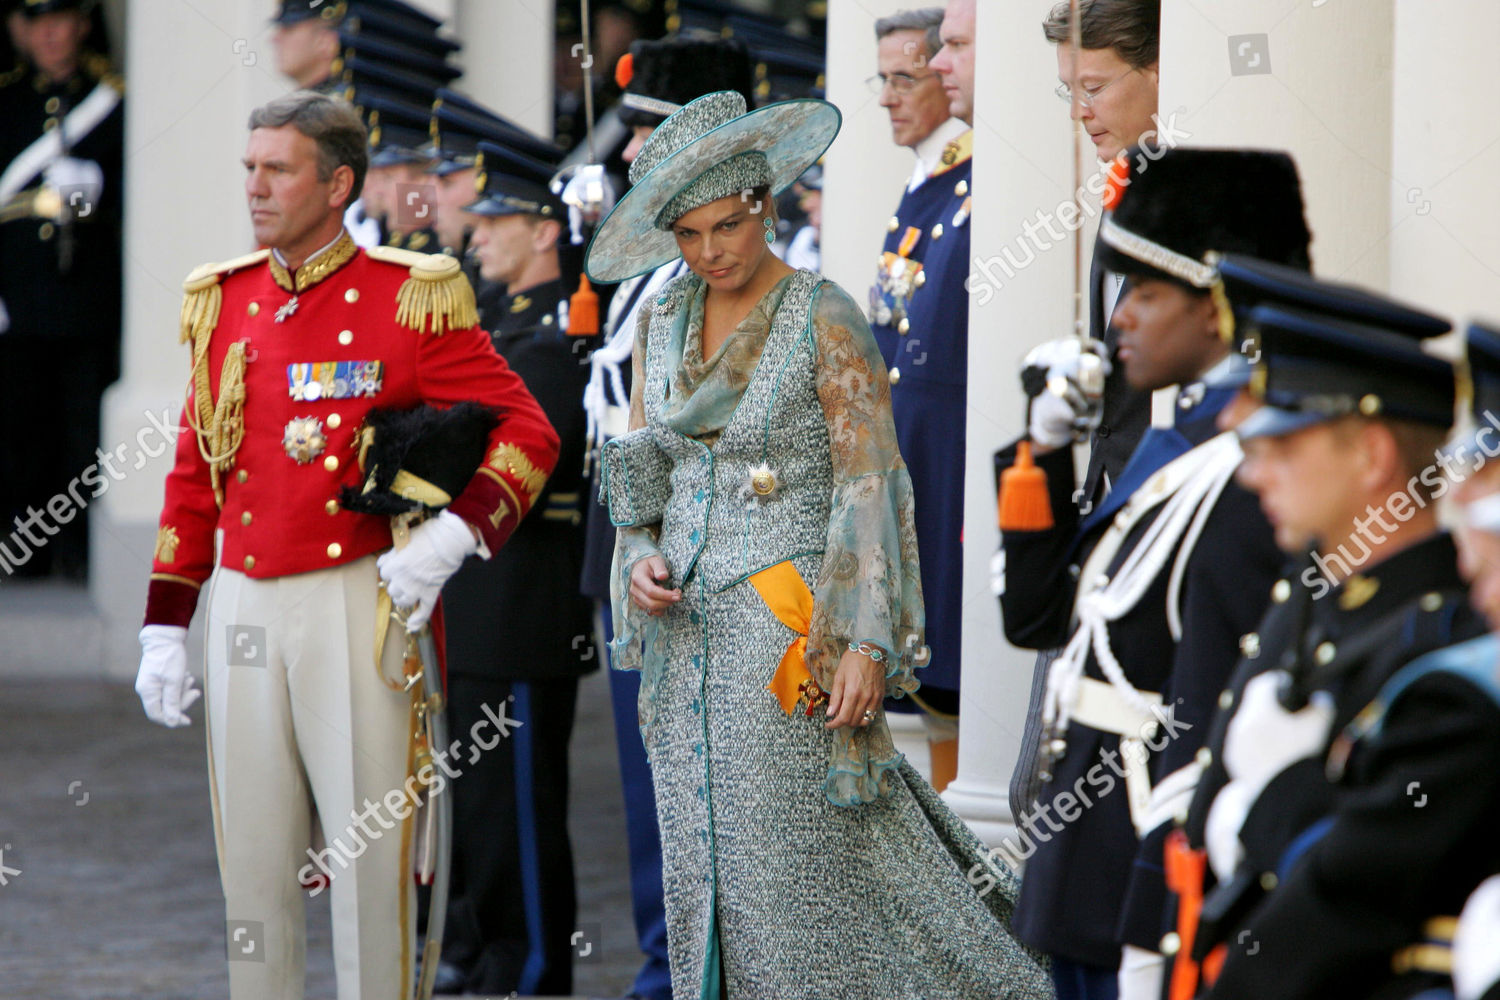 DUTCH ROYALS LEAVING NOORDEINDE PALACE FOR PARLIAMENT ON PRINCES DAY, DEN HAAG, HOLLAND - 20 SEP 2005: стоковое фото